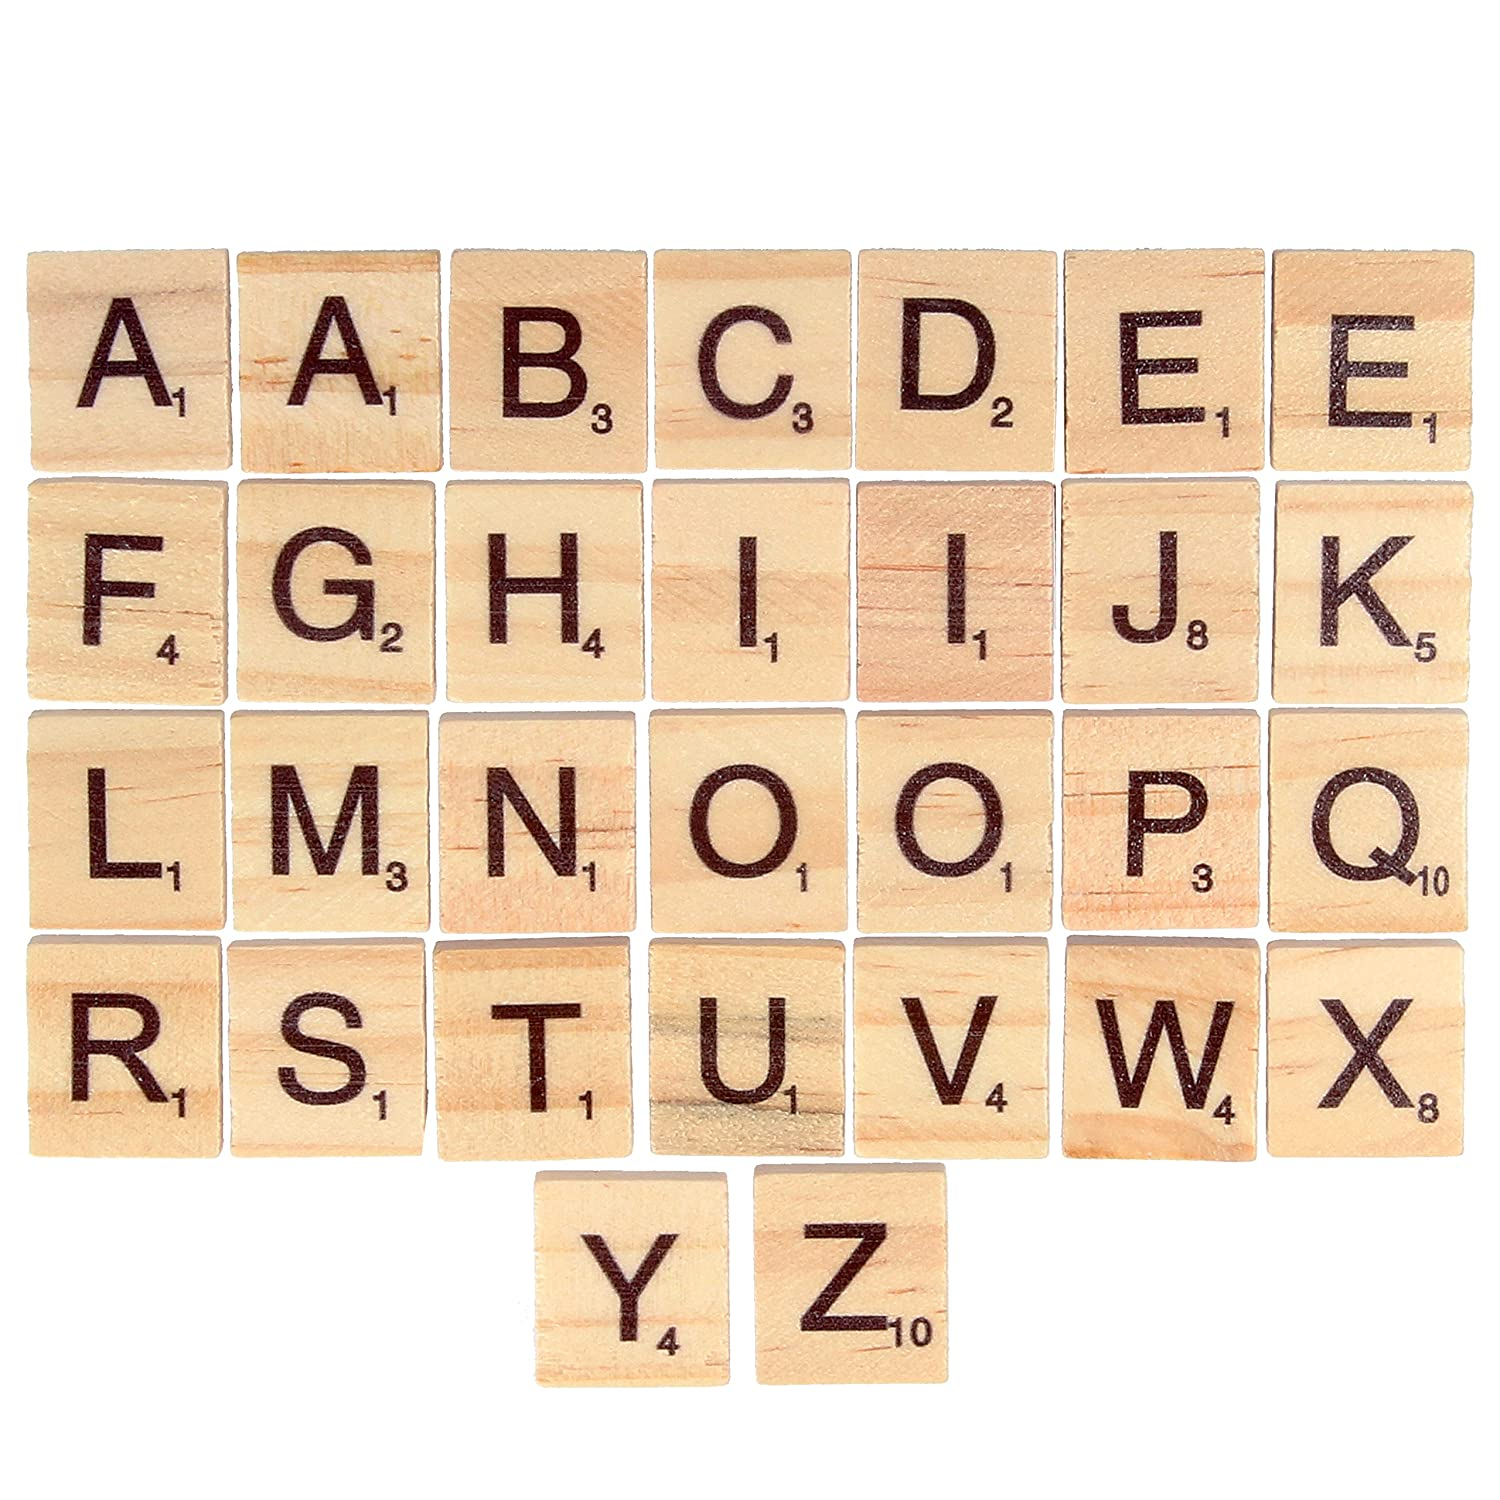 30Pc Wooden Alphabet Tiles | Wood Board Game Replacement Arts & Crafts Letters White Hinge